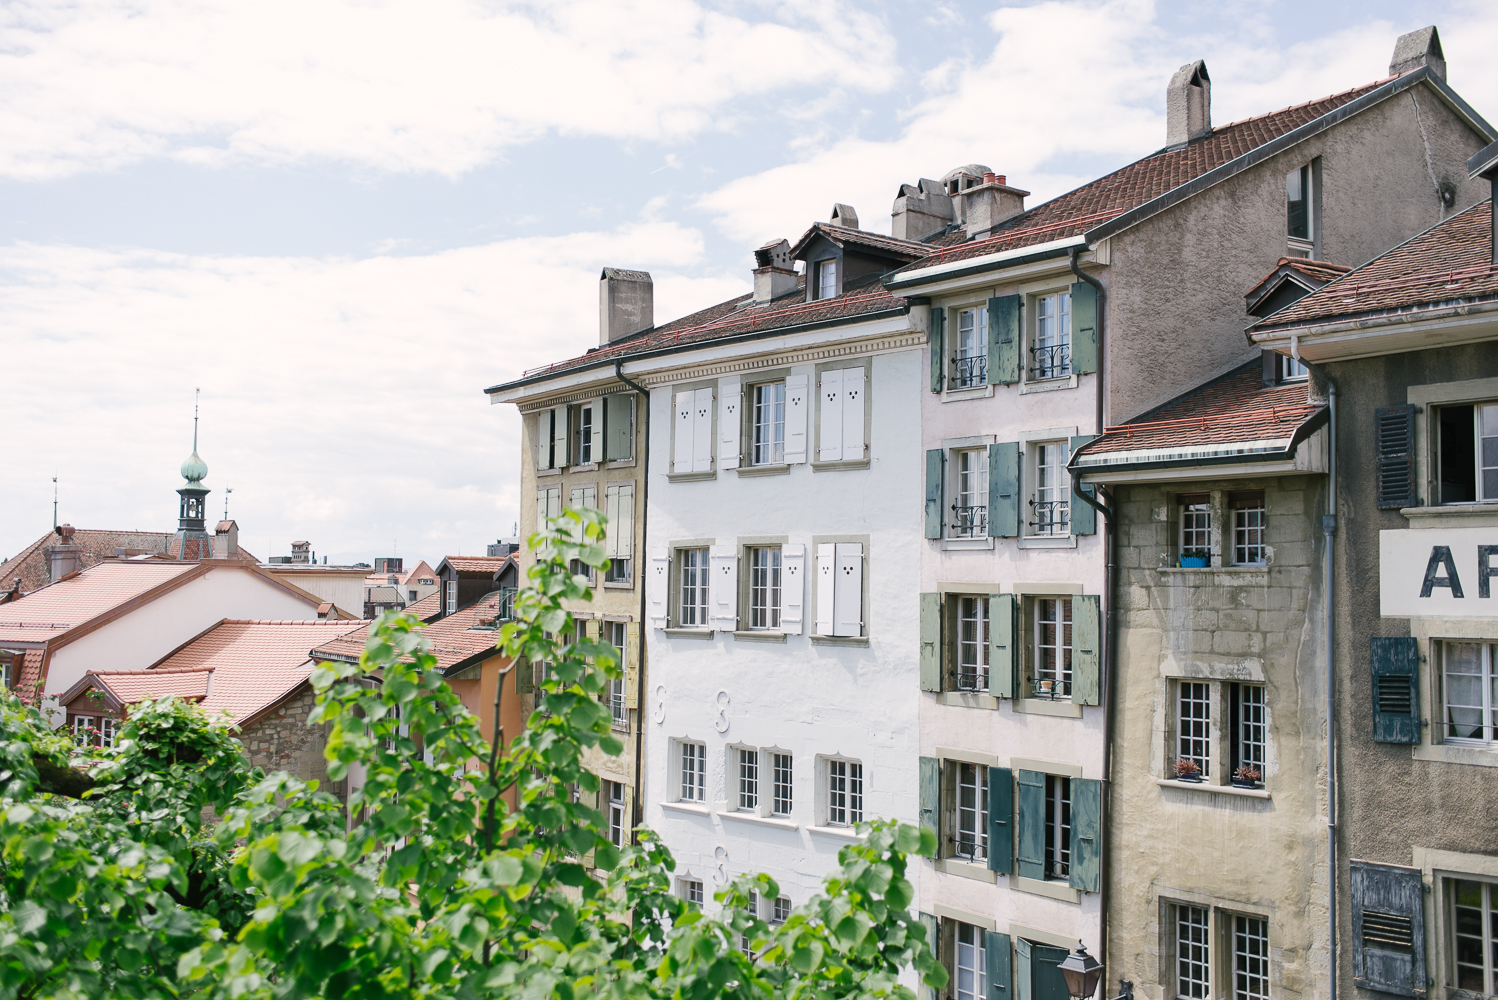 Beautyosuaurs Lex-Alex Good-Lifestyle Blog-Travel Blog-Lausanne-Switzerland-AlexGoodTravels-Europe